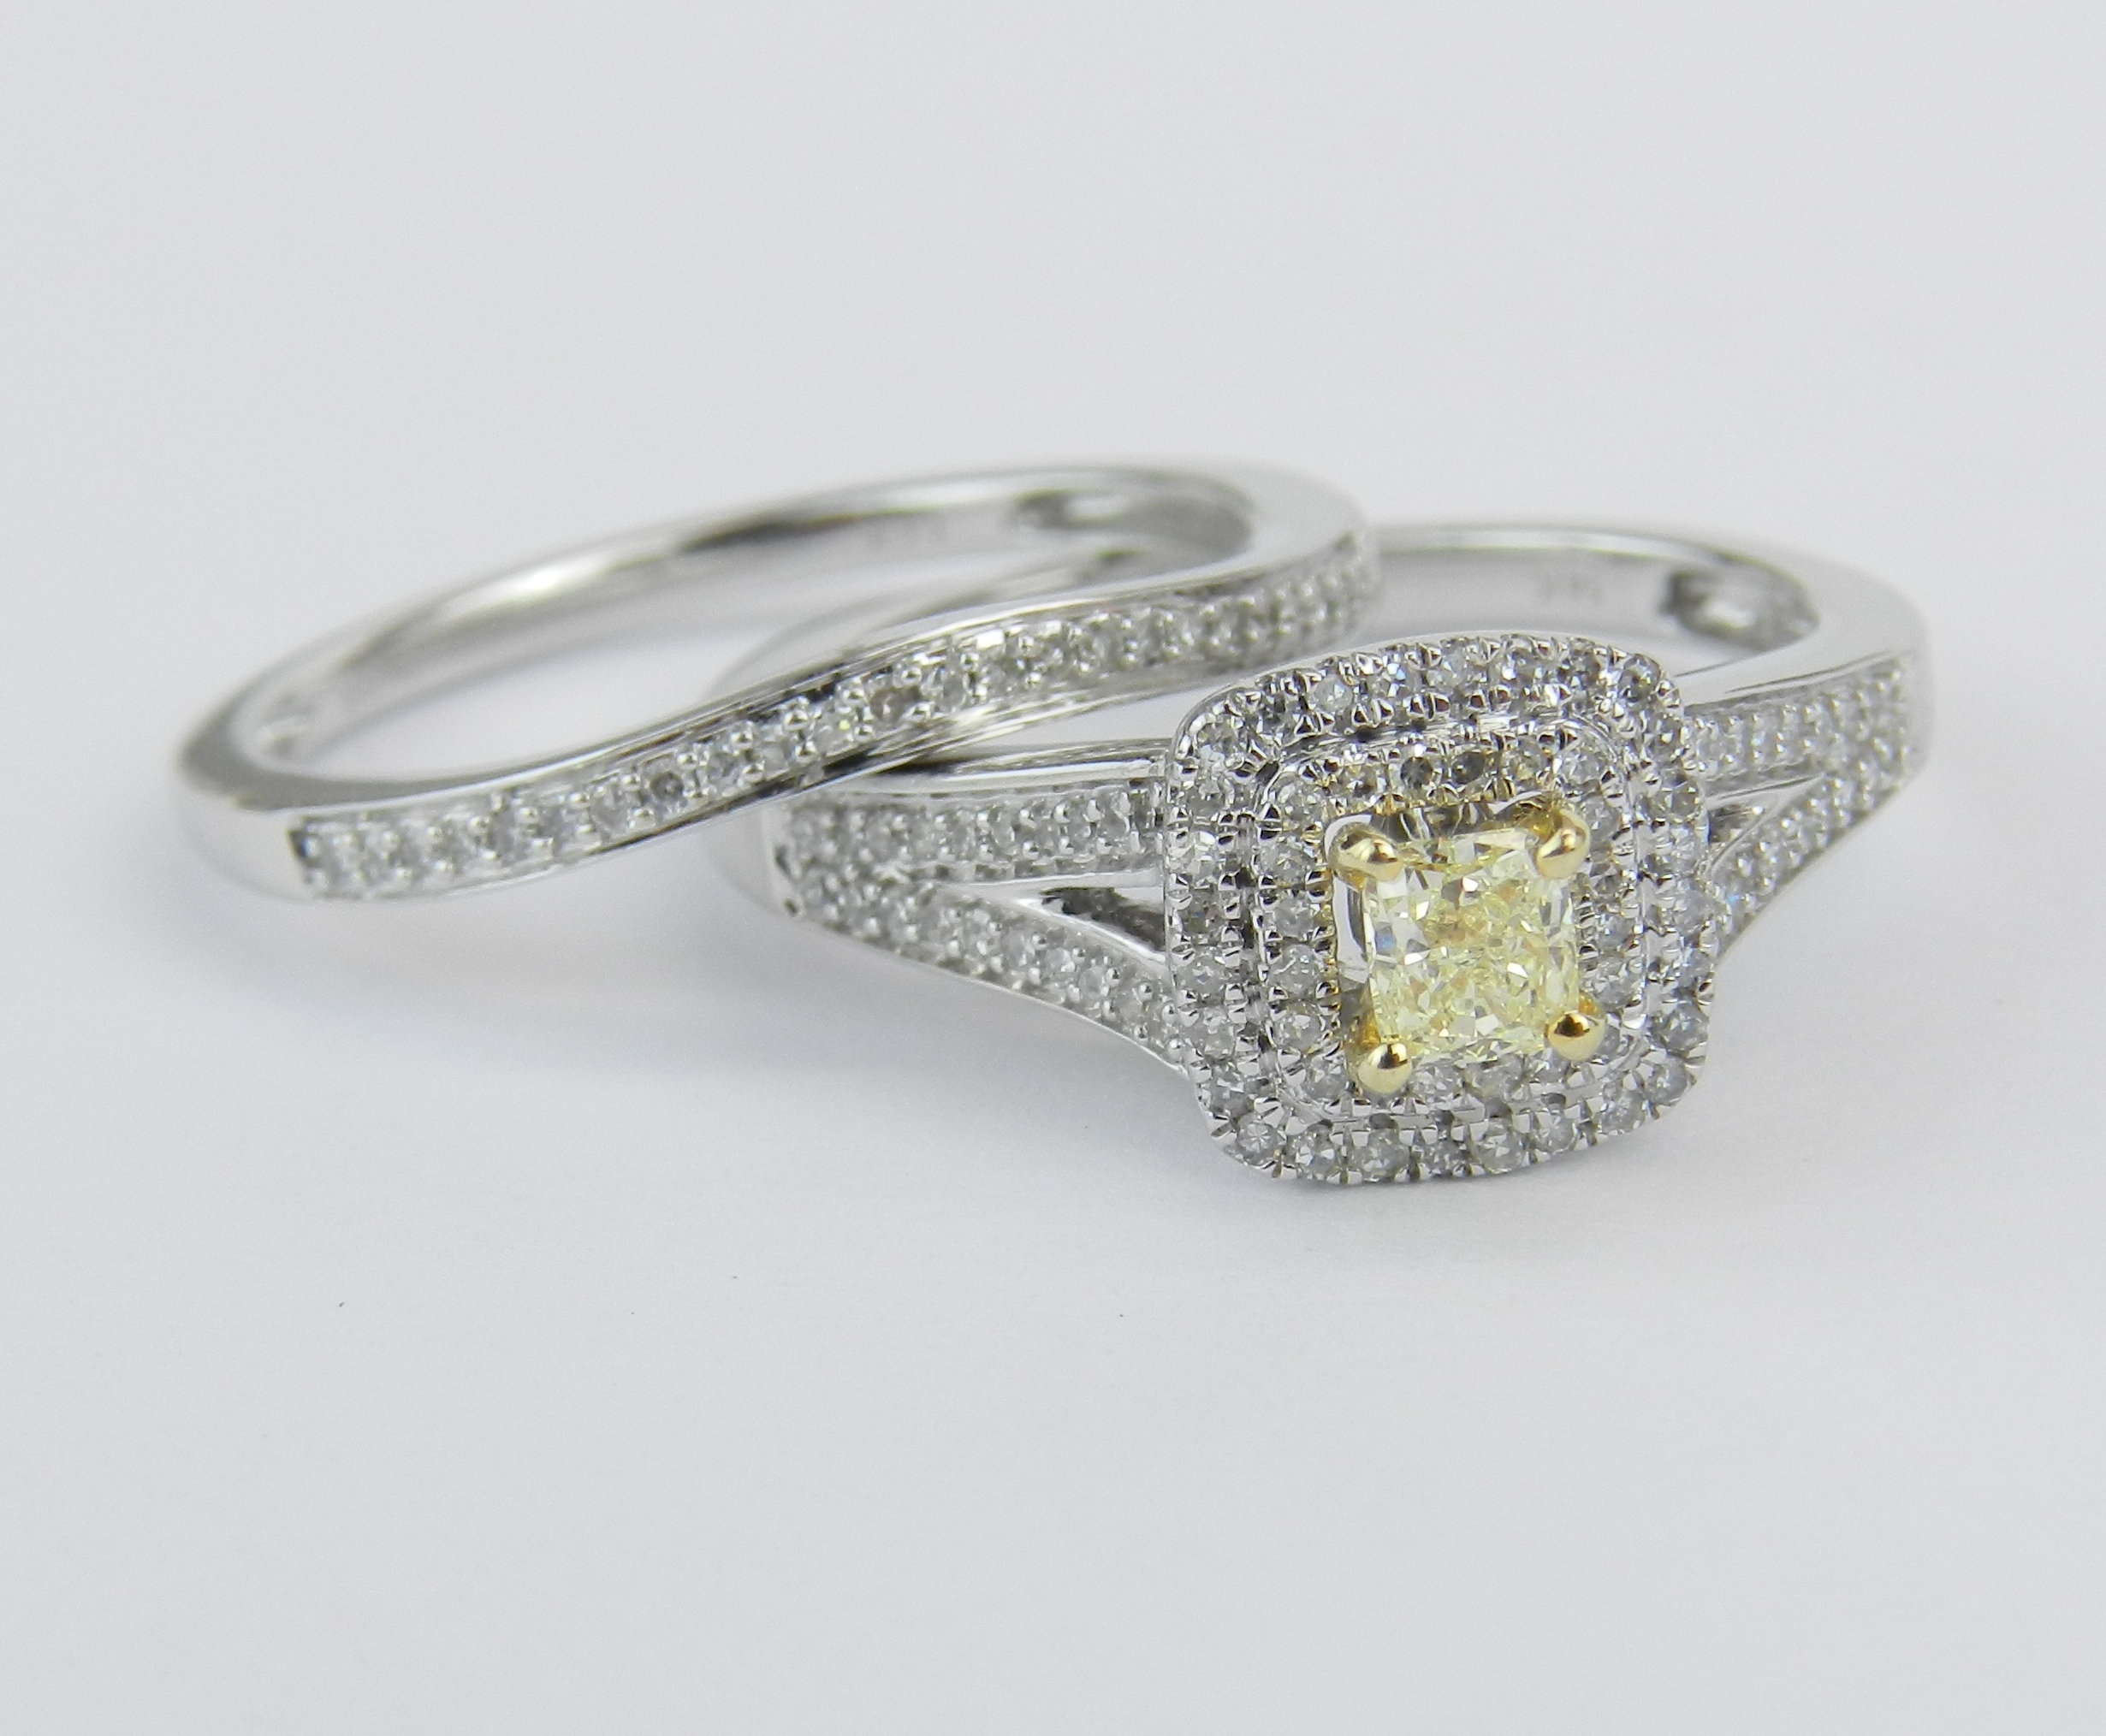 Princess Cut Diamond Engagement Ring, Canary Diamond In Most Recent Certified Princess Cut Diamond Contour Anniversary Bands In White Gold (View 19 of 25)